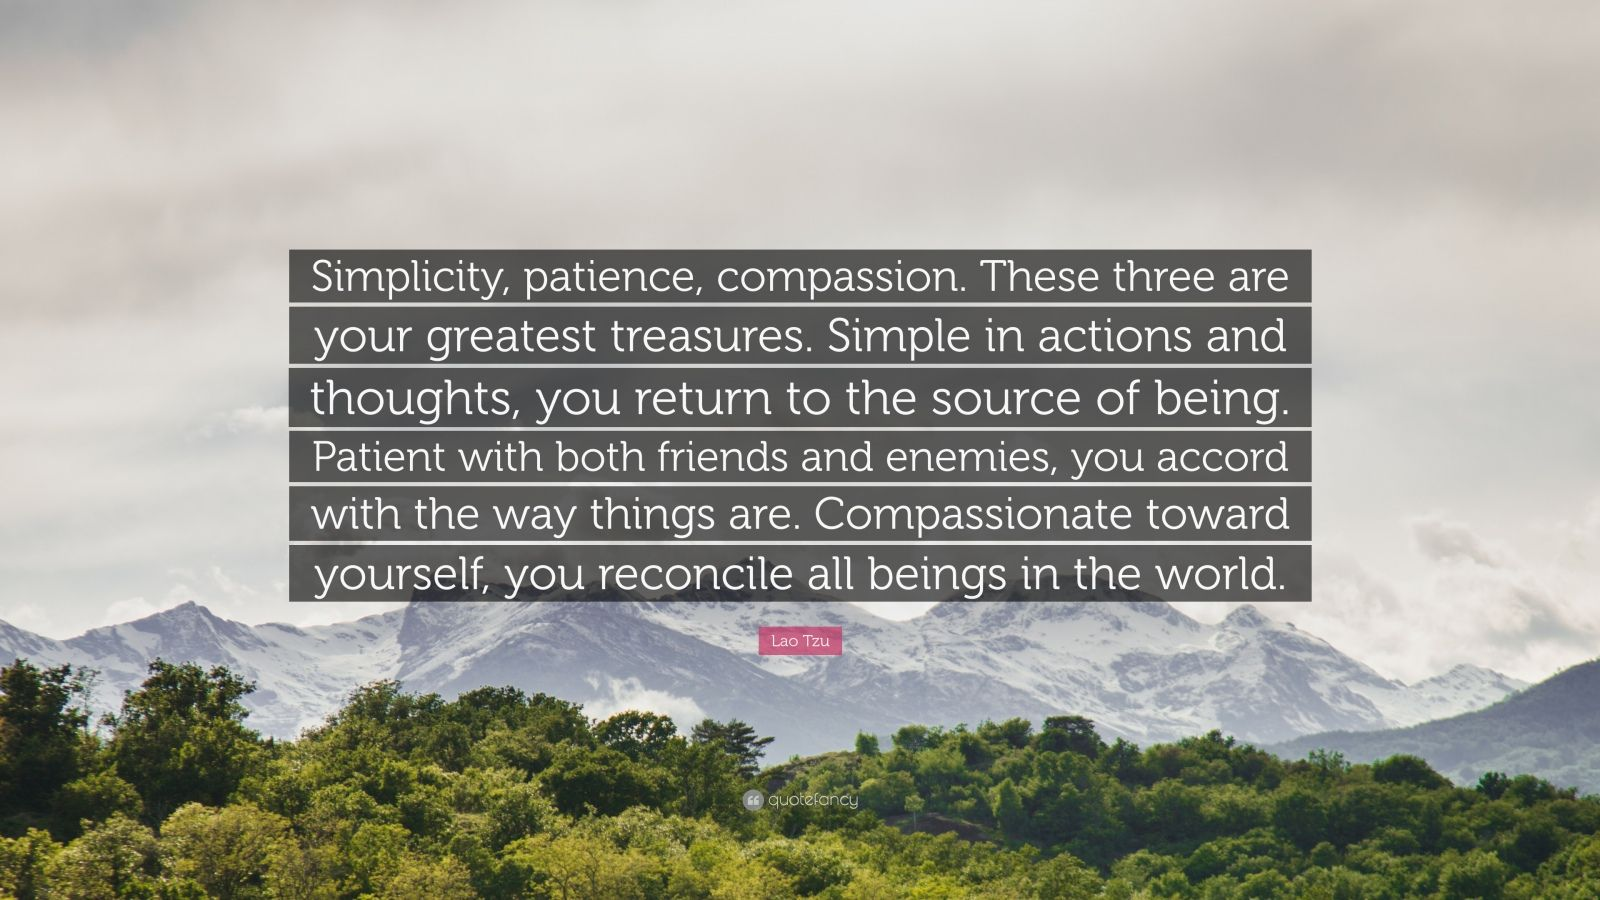 "Lao Tzu Quote: ""Simplicity, patience, compassion. These three are your greatest treasures. Simple in actions and thoughts, you return to the source of being. Patient with both friends and enemies, you accord with the way things are. Compassionate toward yourself, you reconcile all beings in the world."""